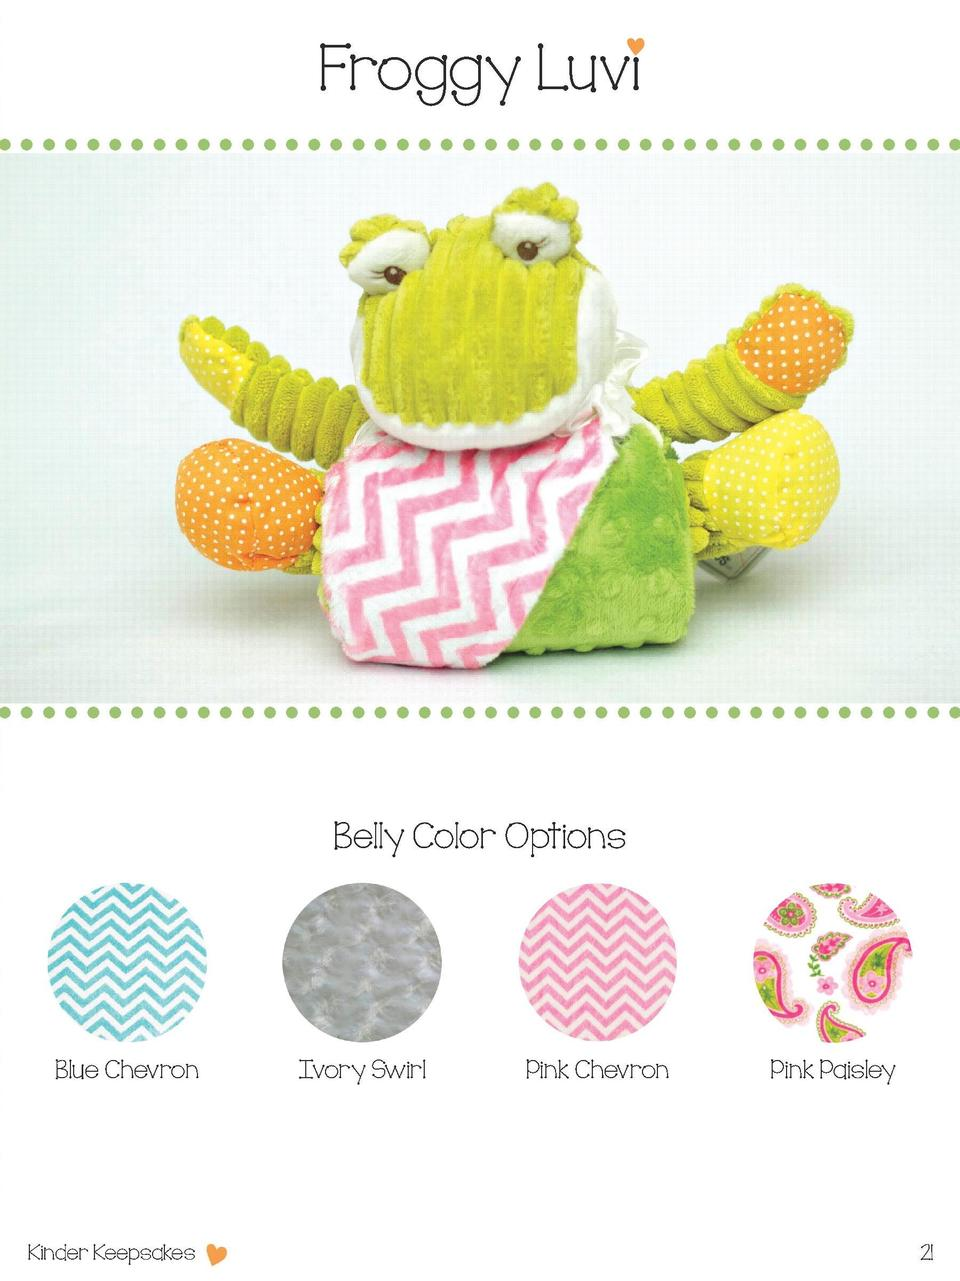 Froggy Luvi  Belly Color Options  Blue Chevron  Kinder Keepsakes  Ivory Swirl  Pink Chevron  Pink Paisley  21